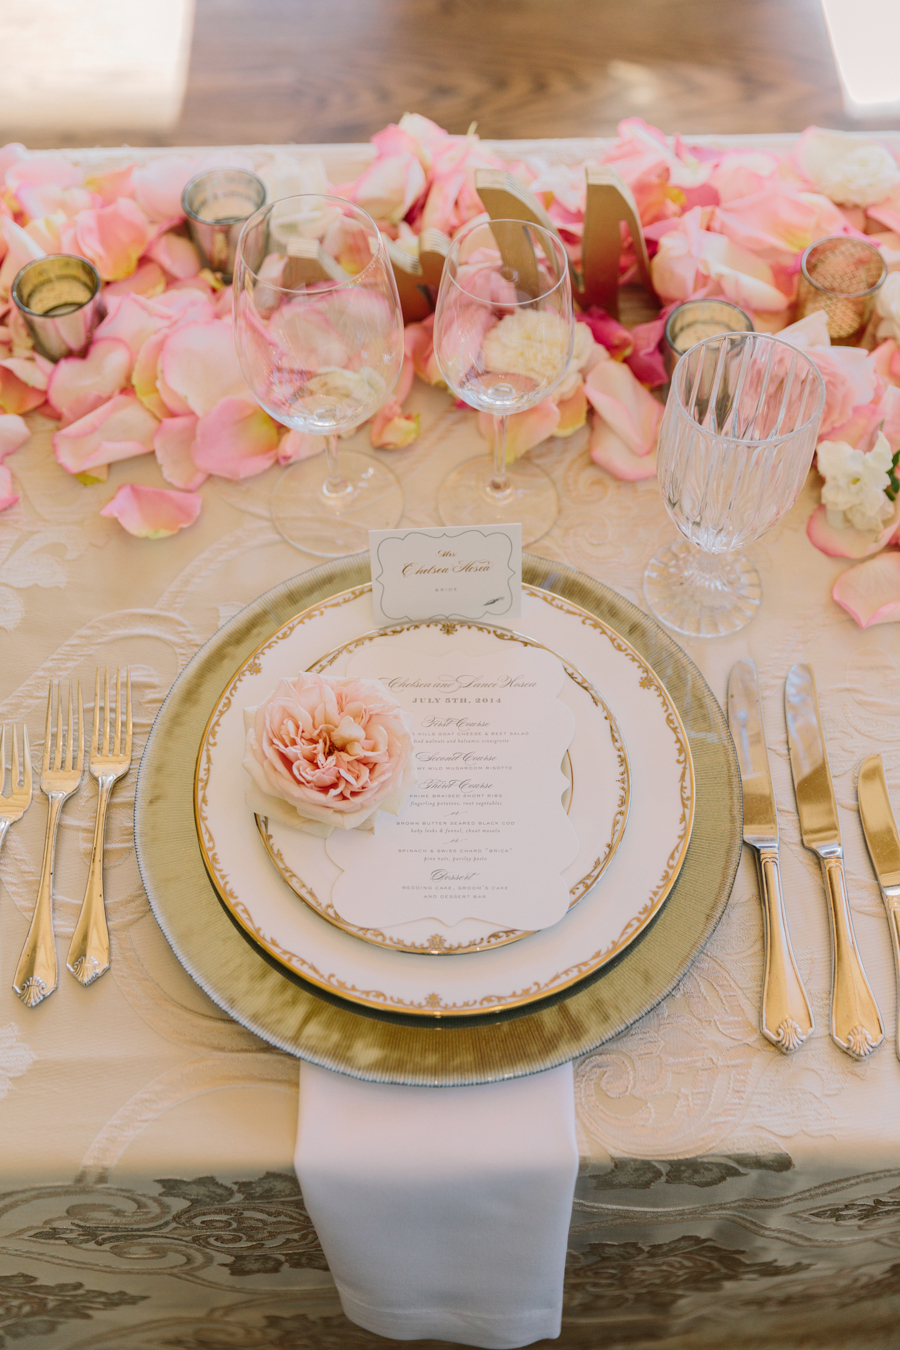 Cool Pink And Gold Table Setting Pictures - Best Image Engine ... Cool Pink And Gold Table Setting Pictures Best Image Engine & Stunning Gold Table Setting Gallery - Best Image Engine - maxledpro.com